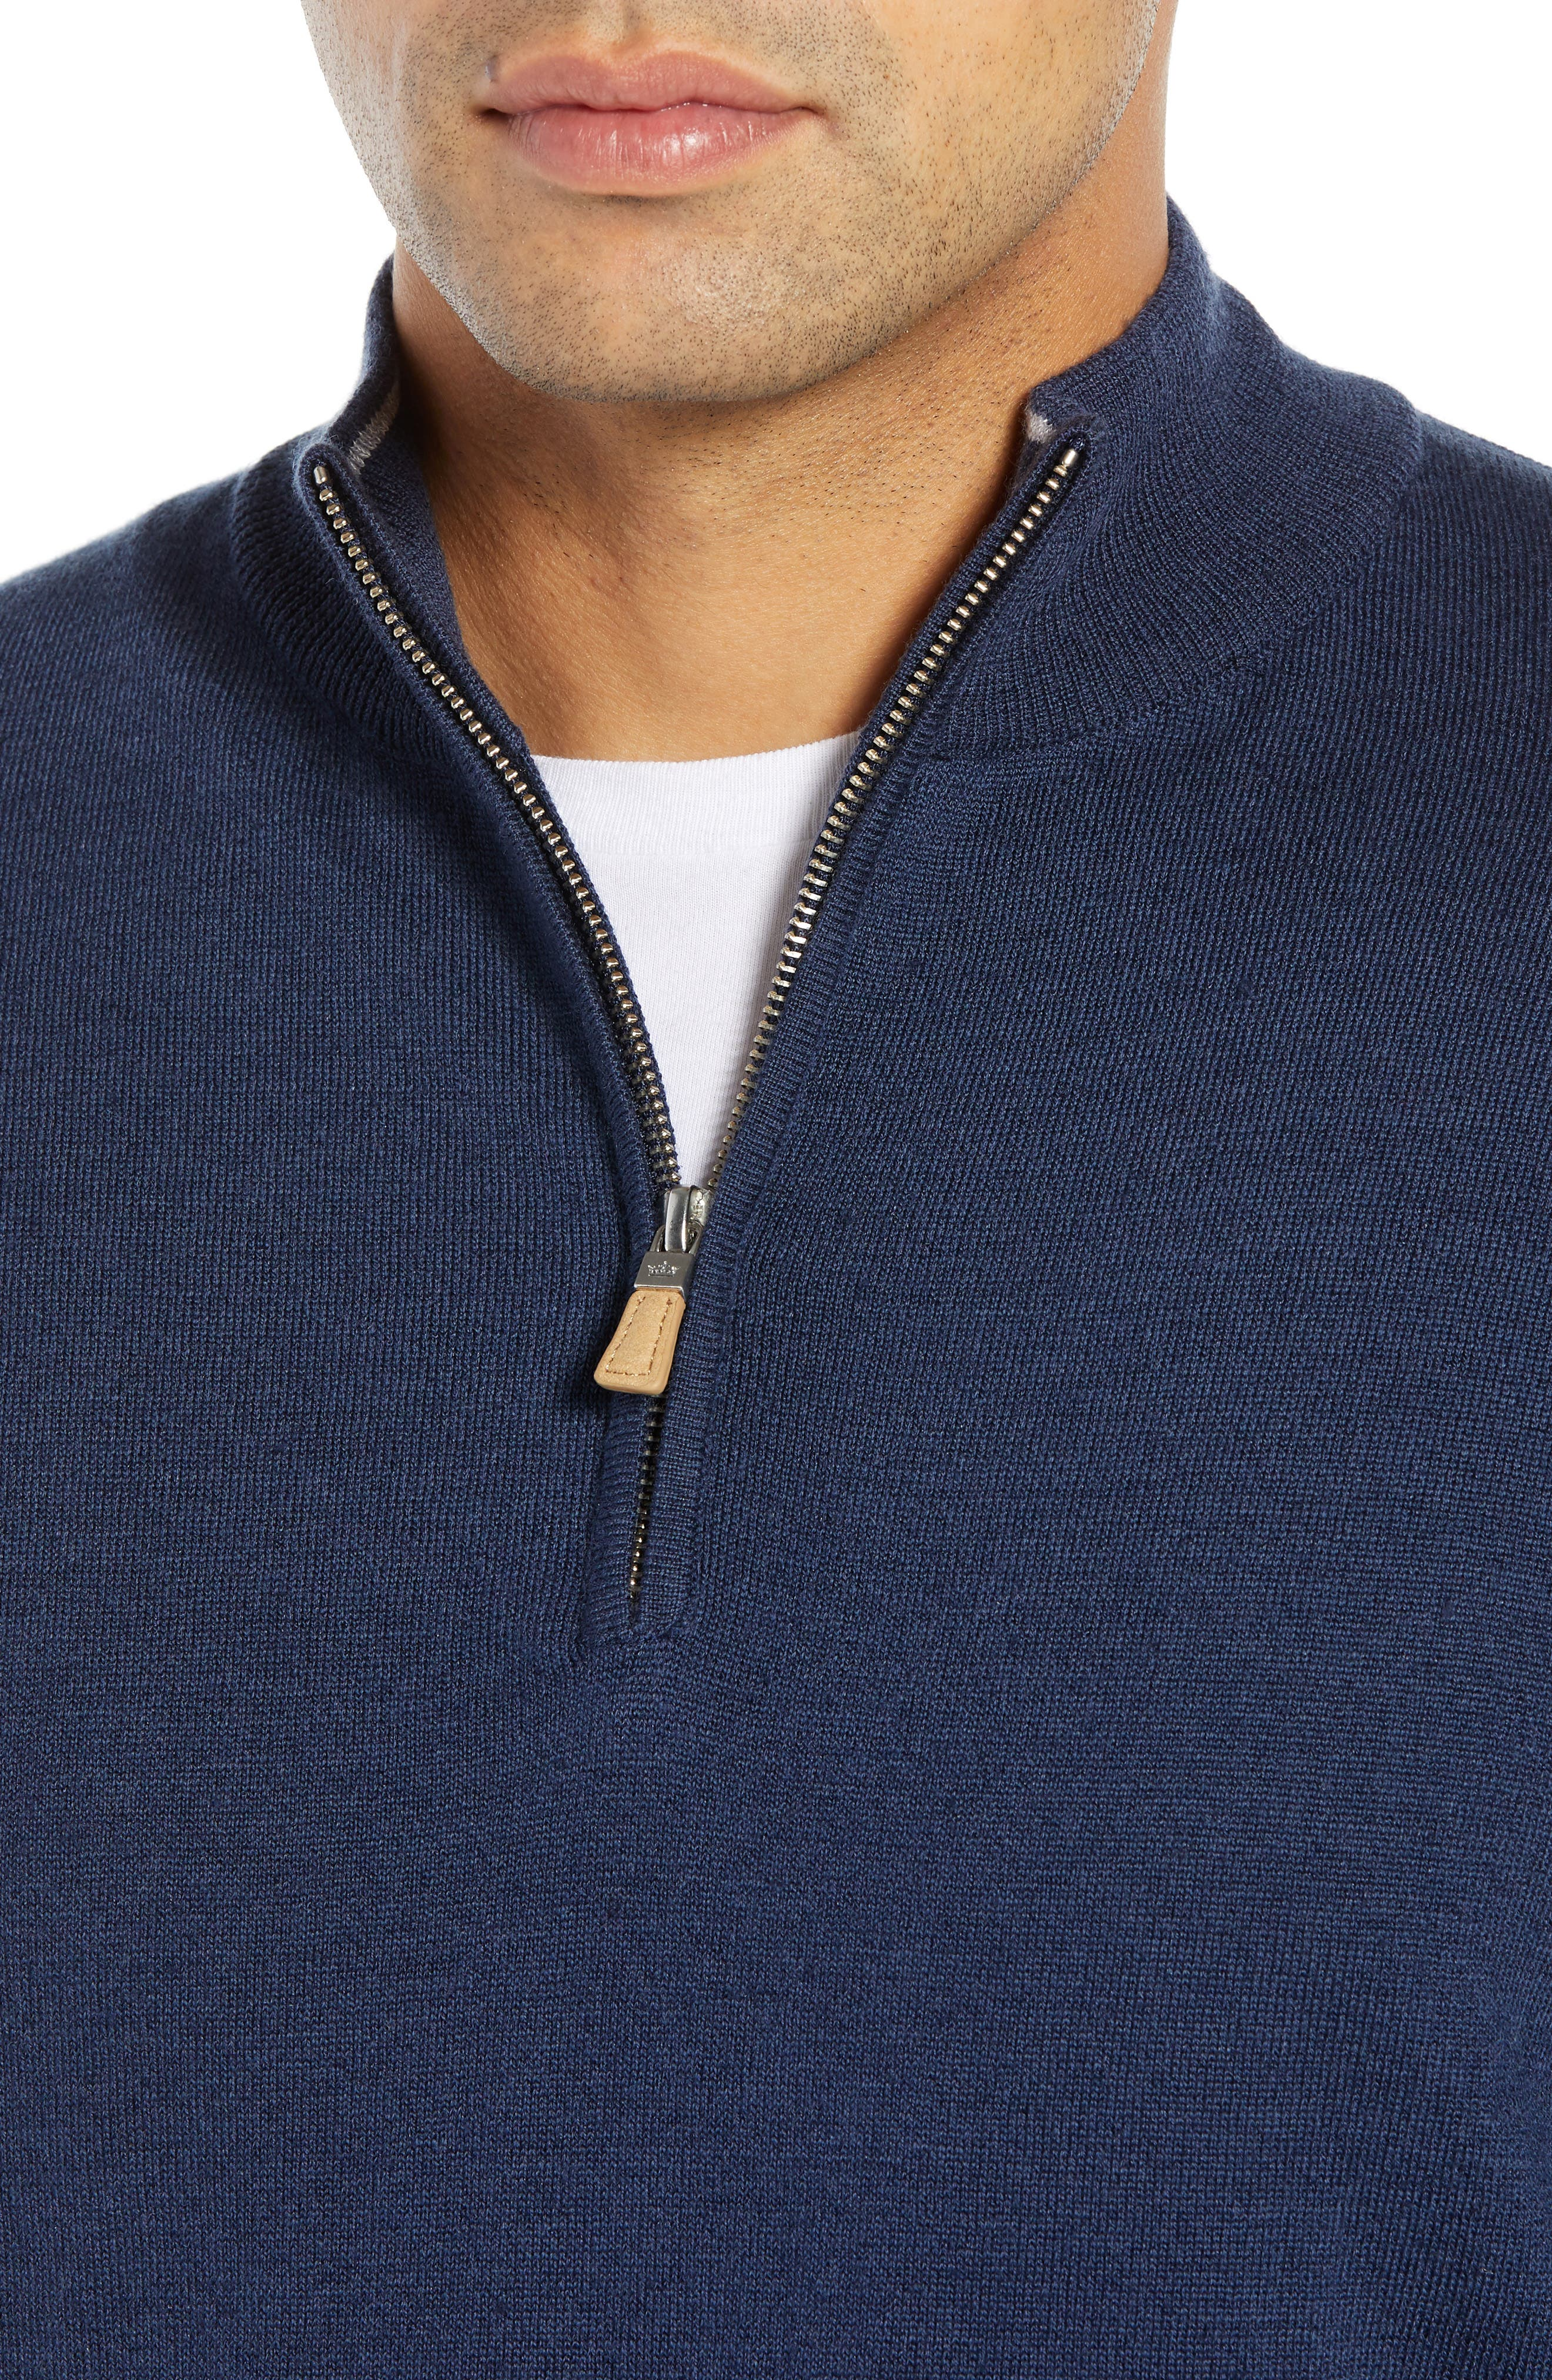 PETER MILLAR,                             Regular Fit Half Zip Wool & Linen Pullover,                             Alternate thumbnail 4, color,                             410